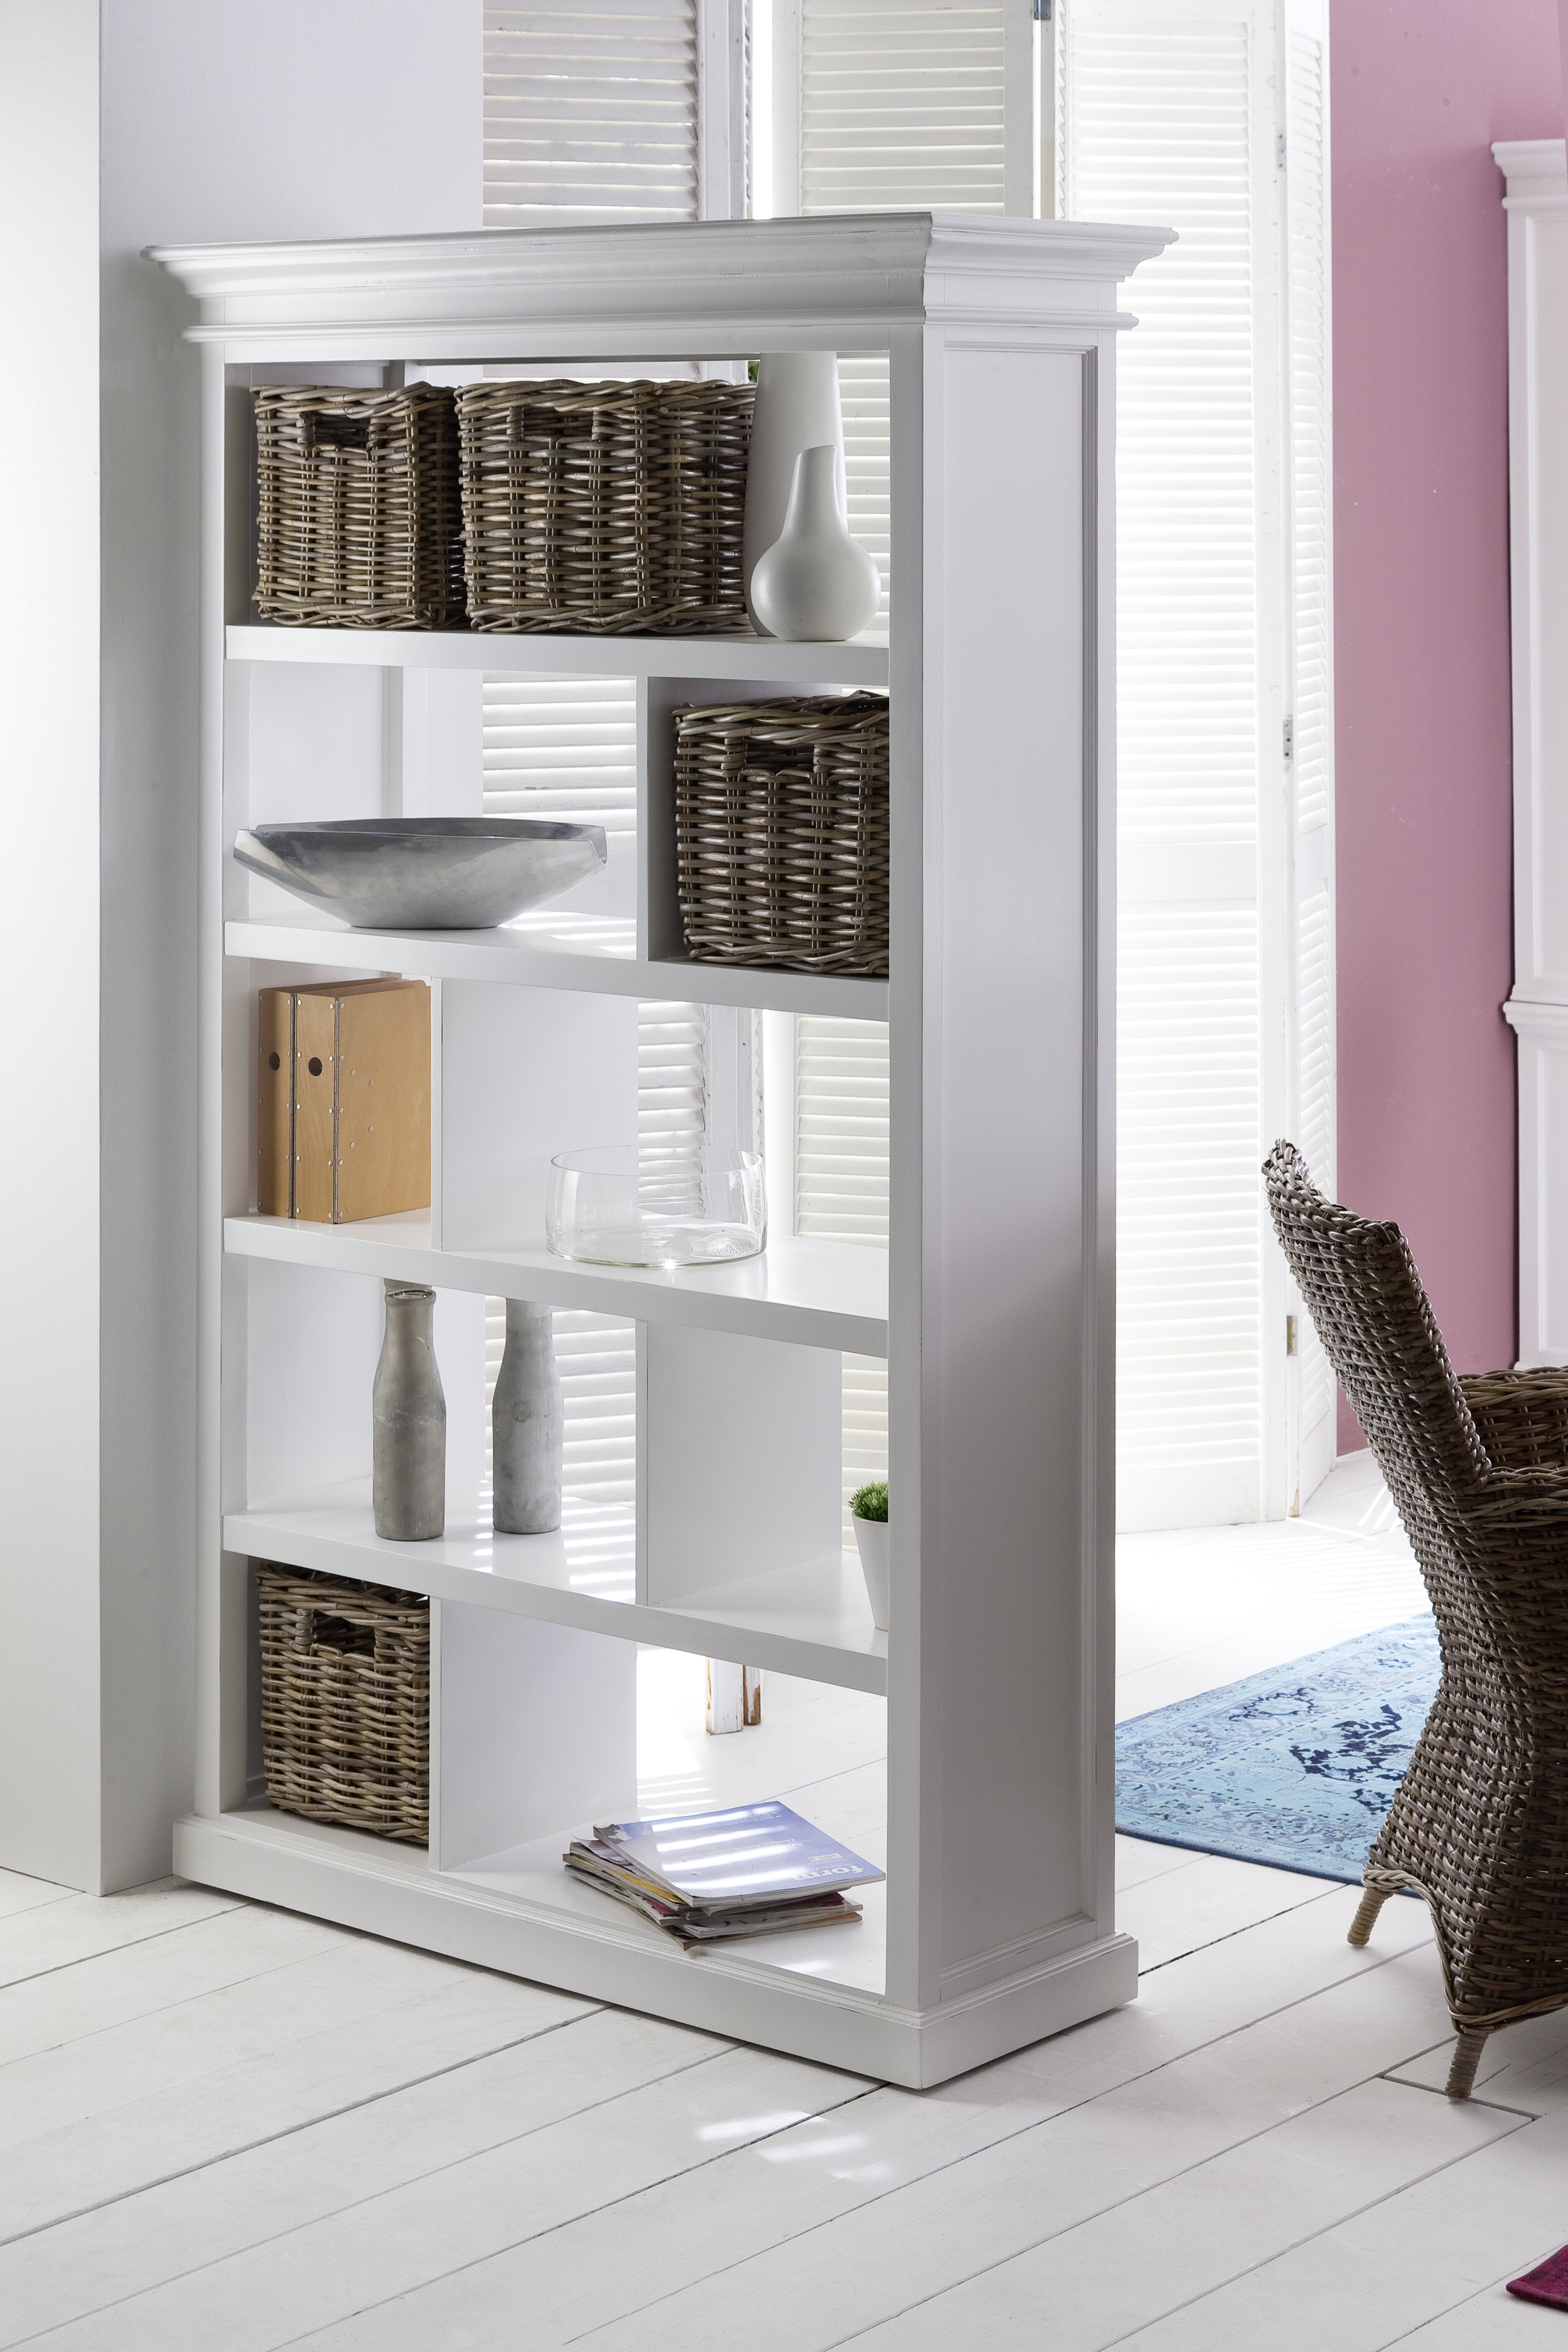 Beachcrest Home Clarewood 748 X 4725 Room Divider With Basket